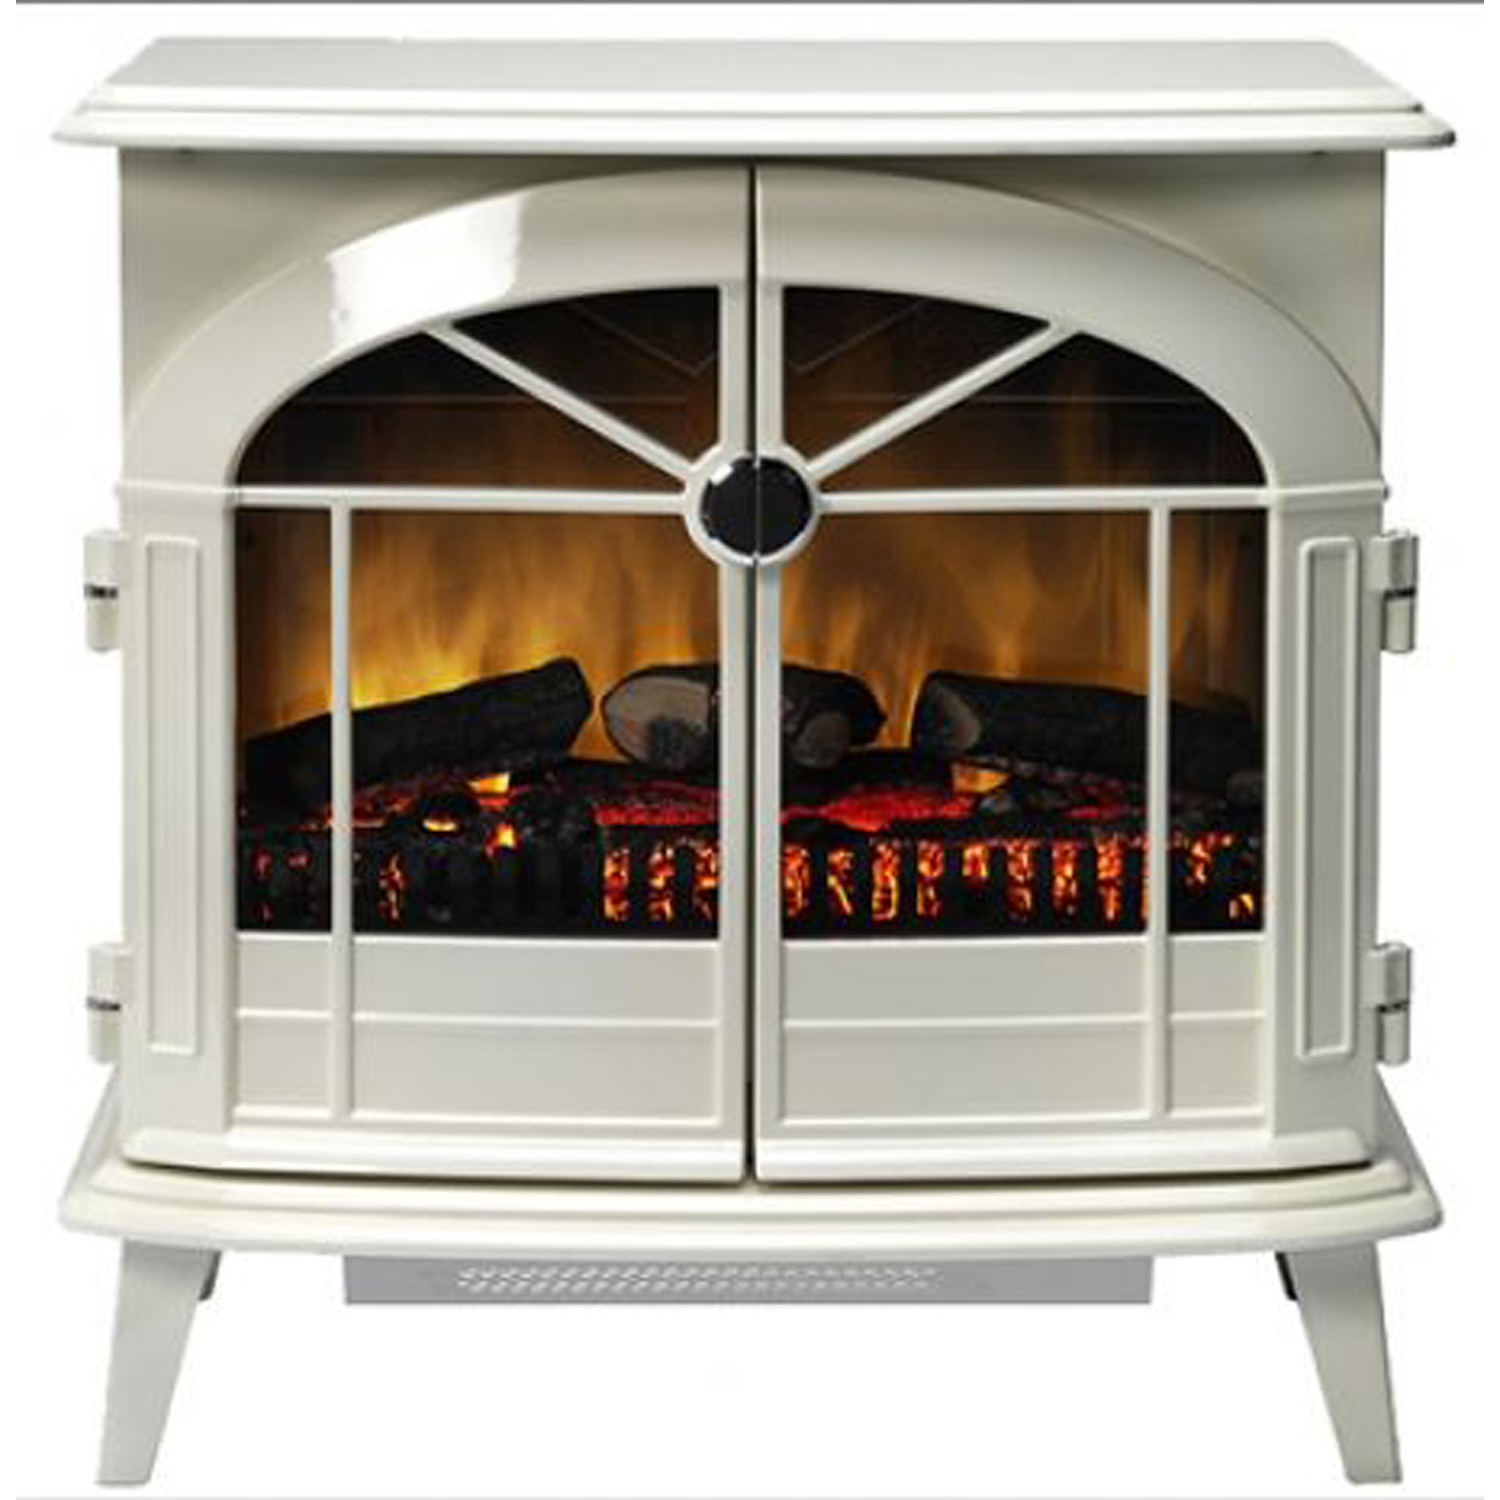 Image of Dimplex Chevalier Optiflame Stove, White